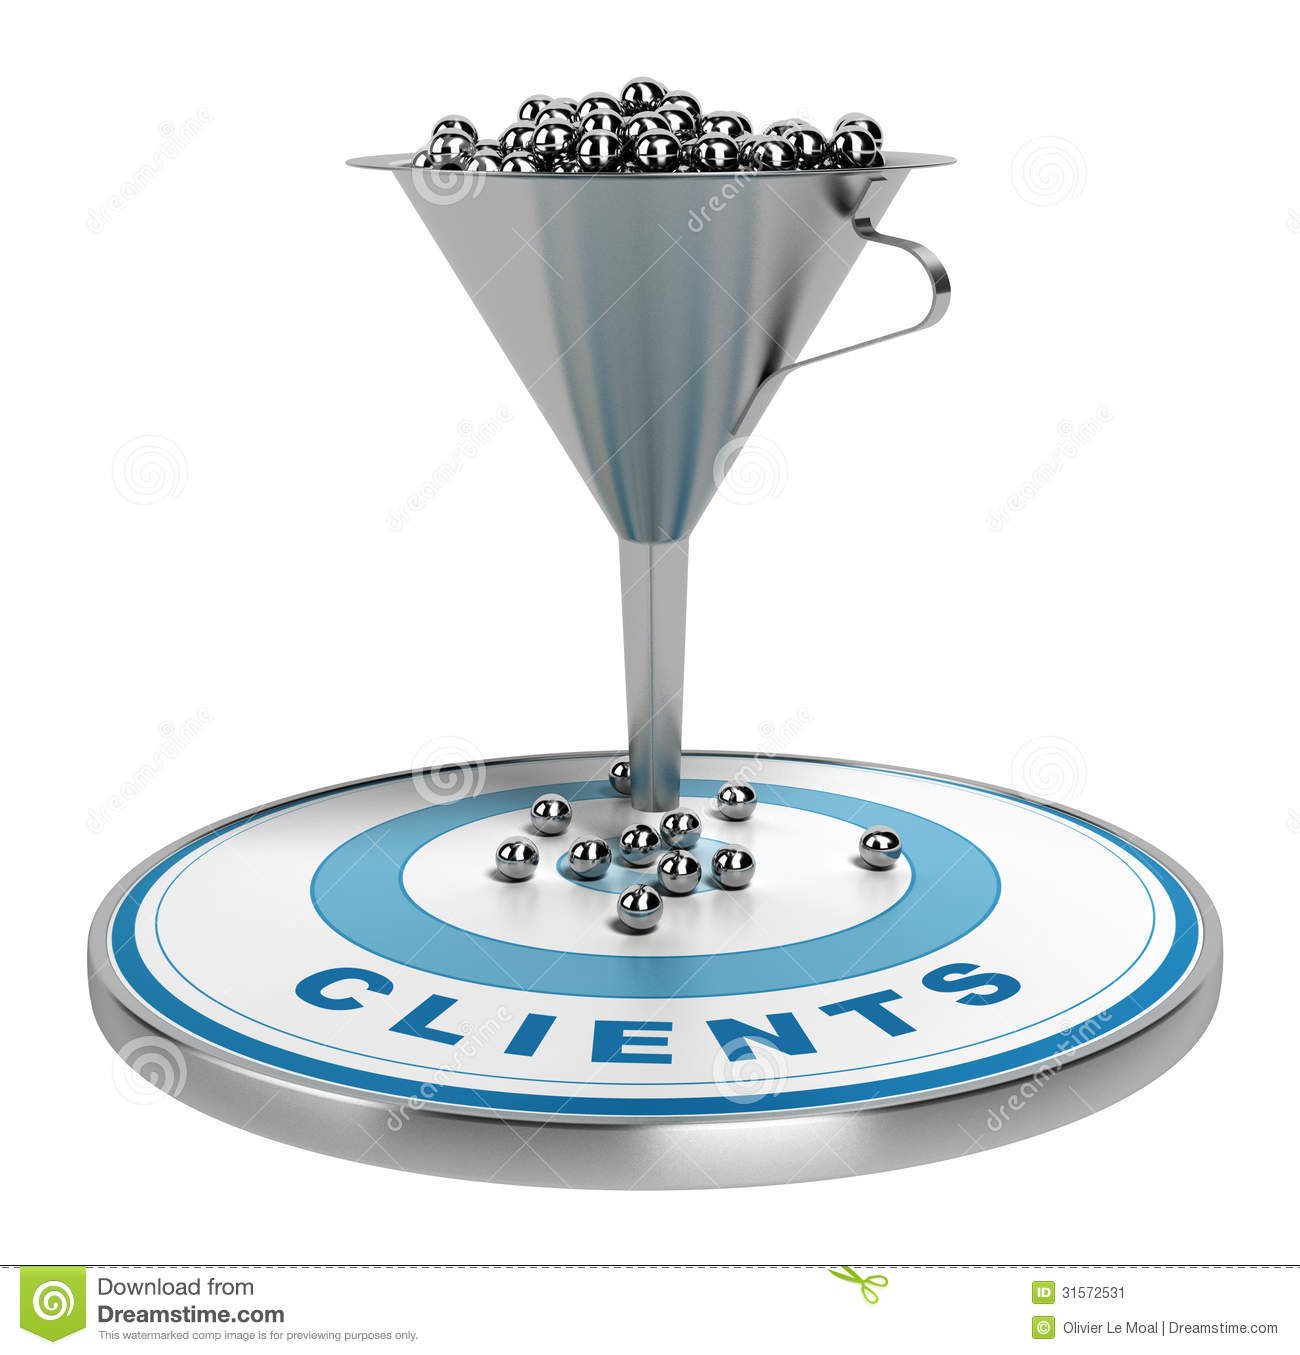 Outsourced Sales and Marketing to Accelerate Revenue